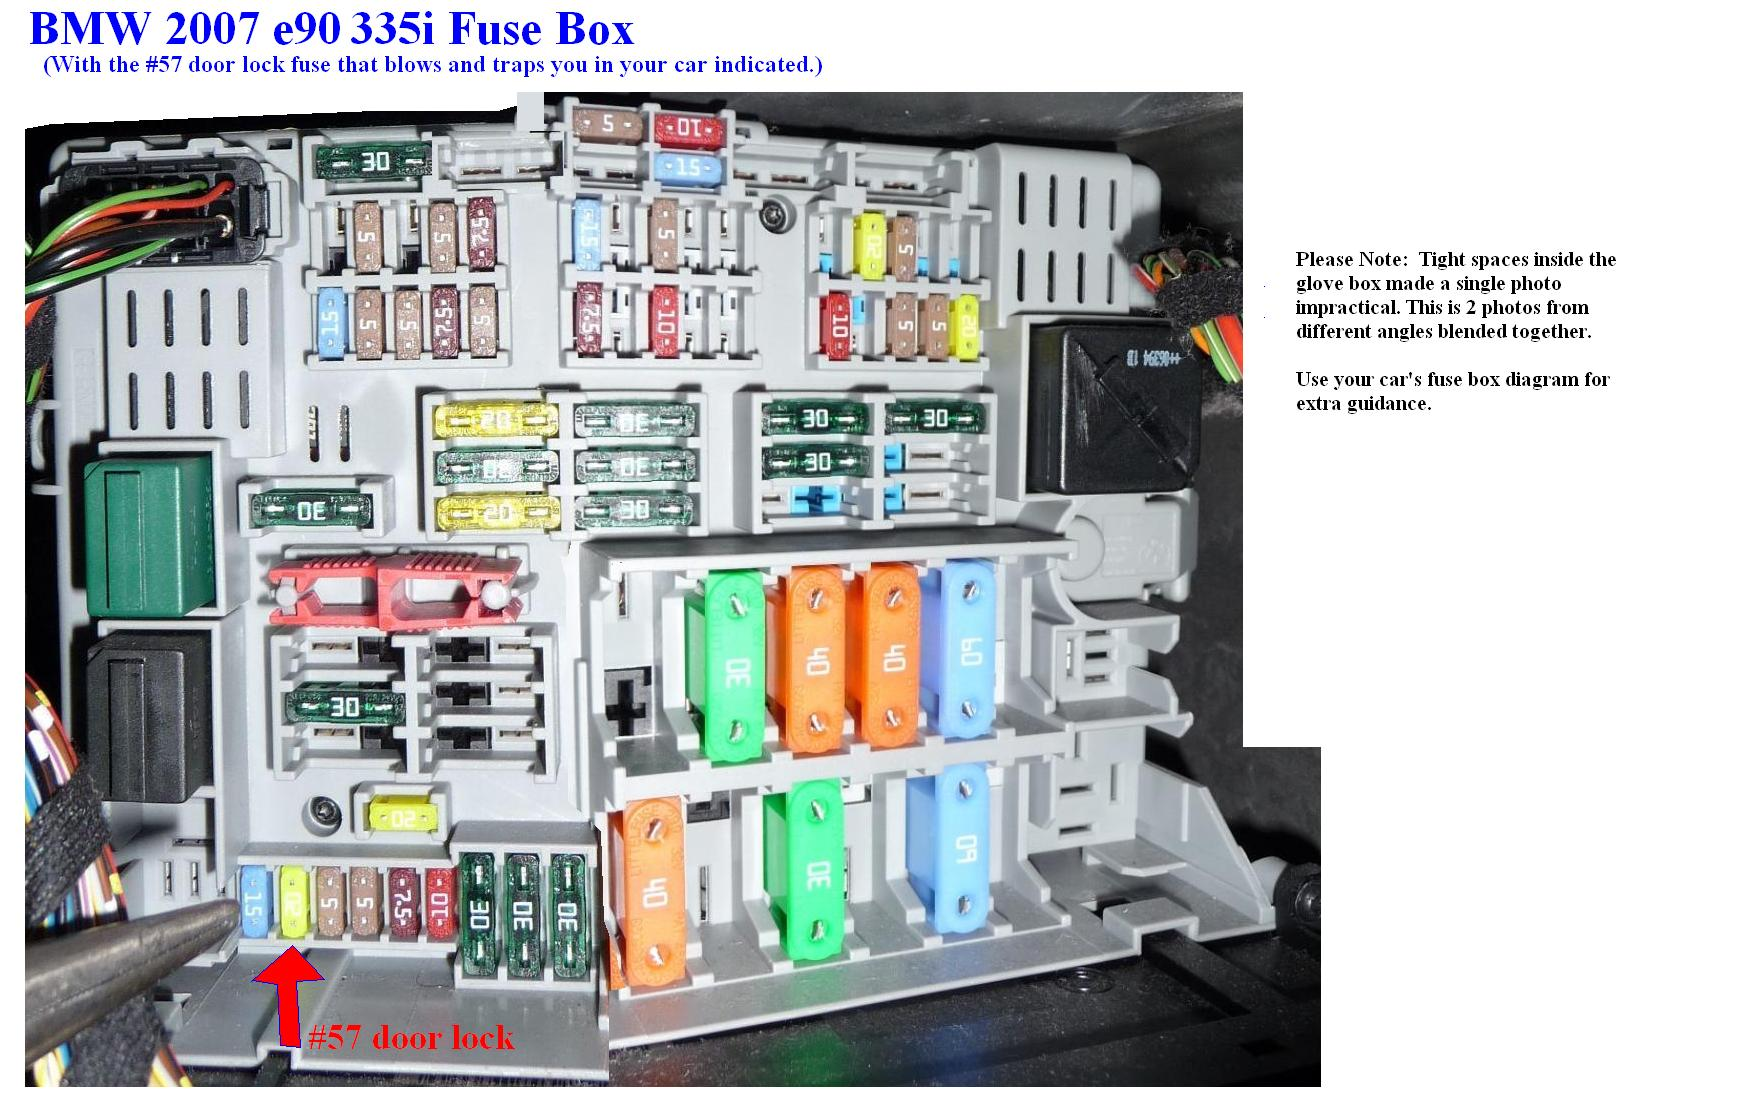 E90fuses_57 e90 fuse box diagram e90 fuse box location \u2022 wiring diagrams j bmw 335i fuse box diagram at gsmx.co